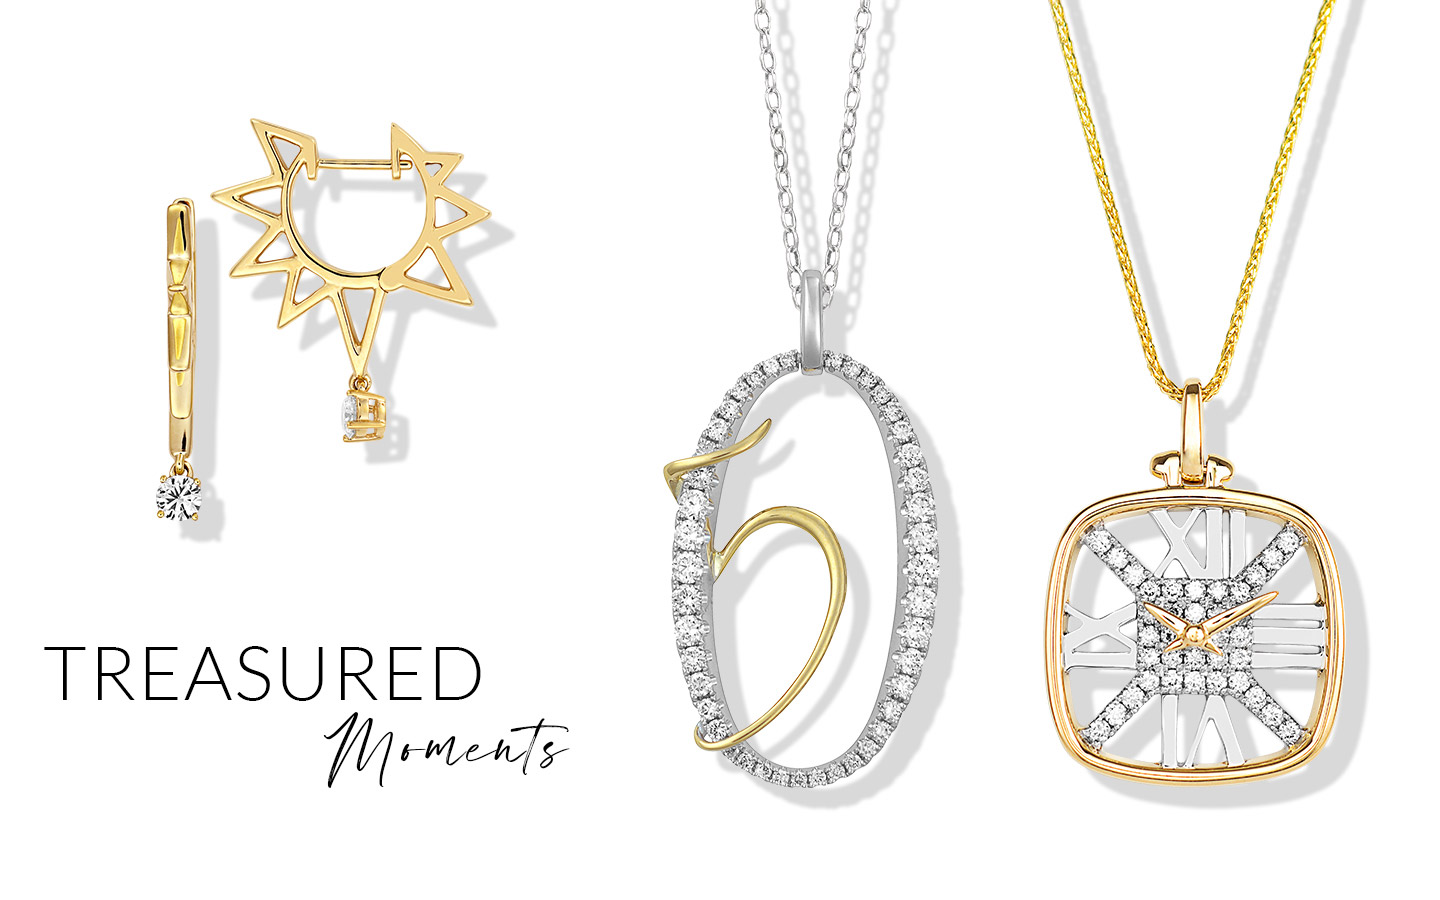 Examples of Treasured Moments Jewelry